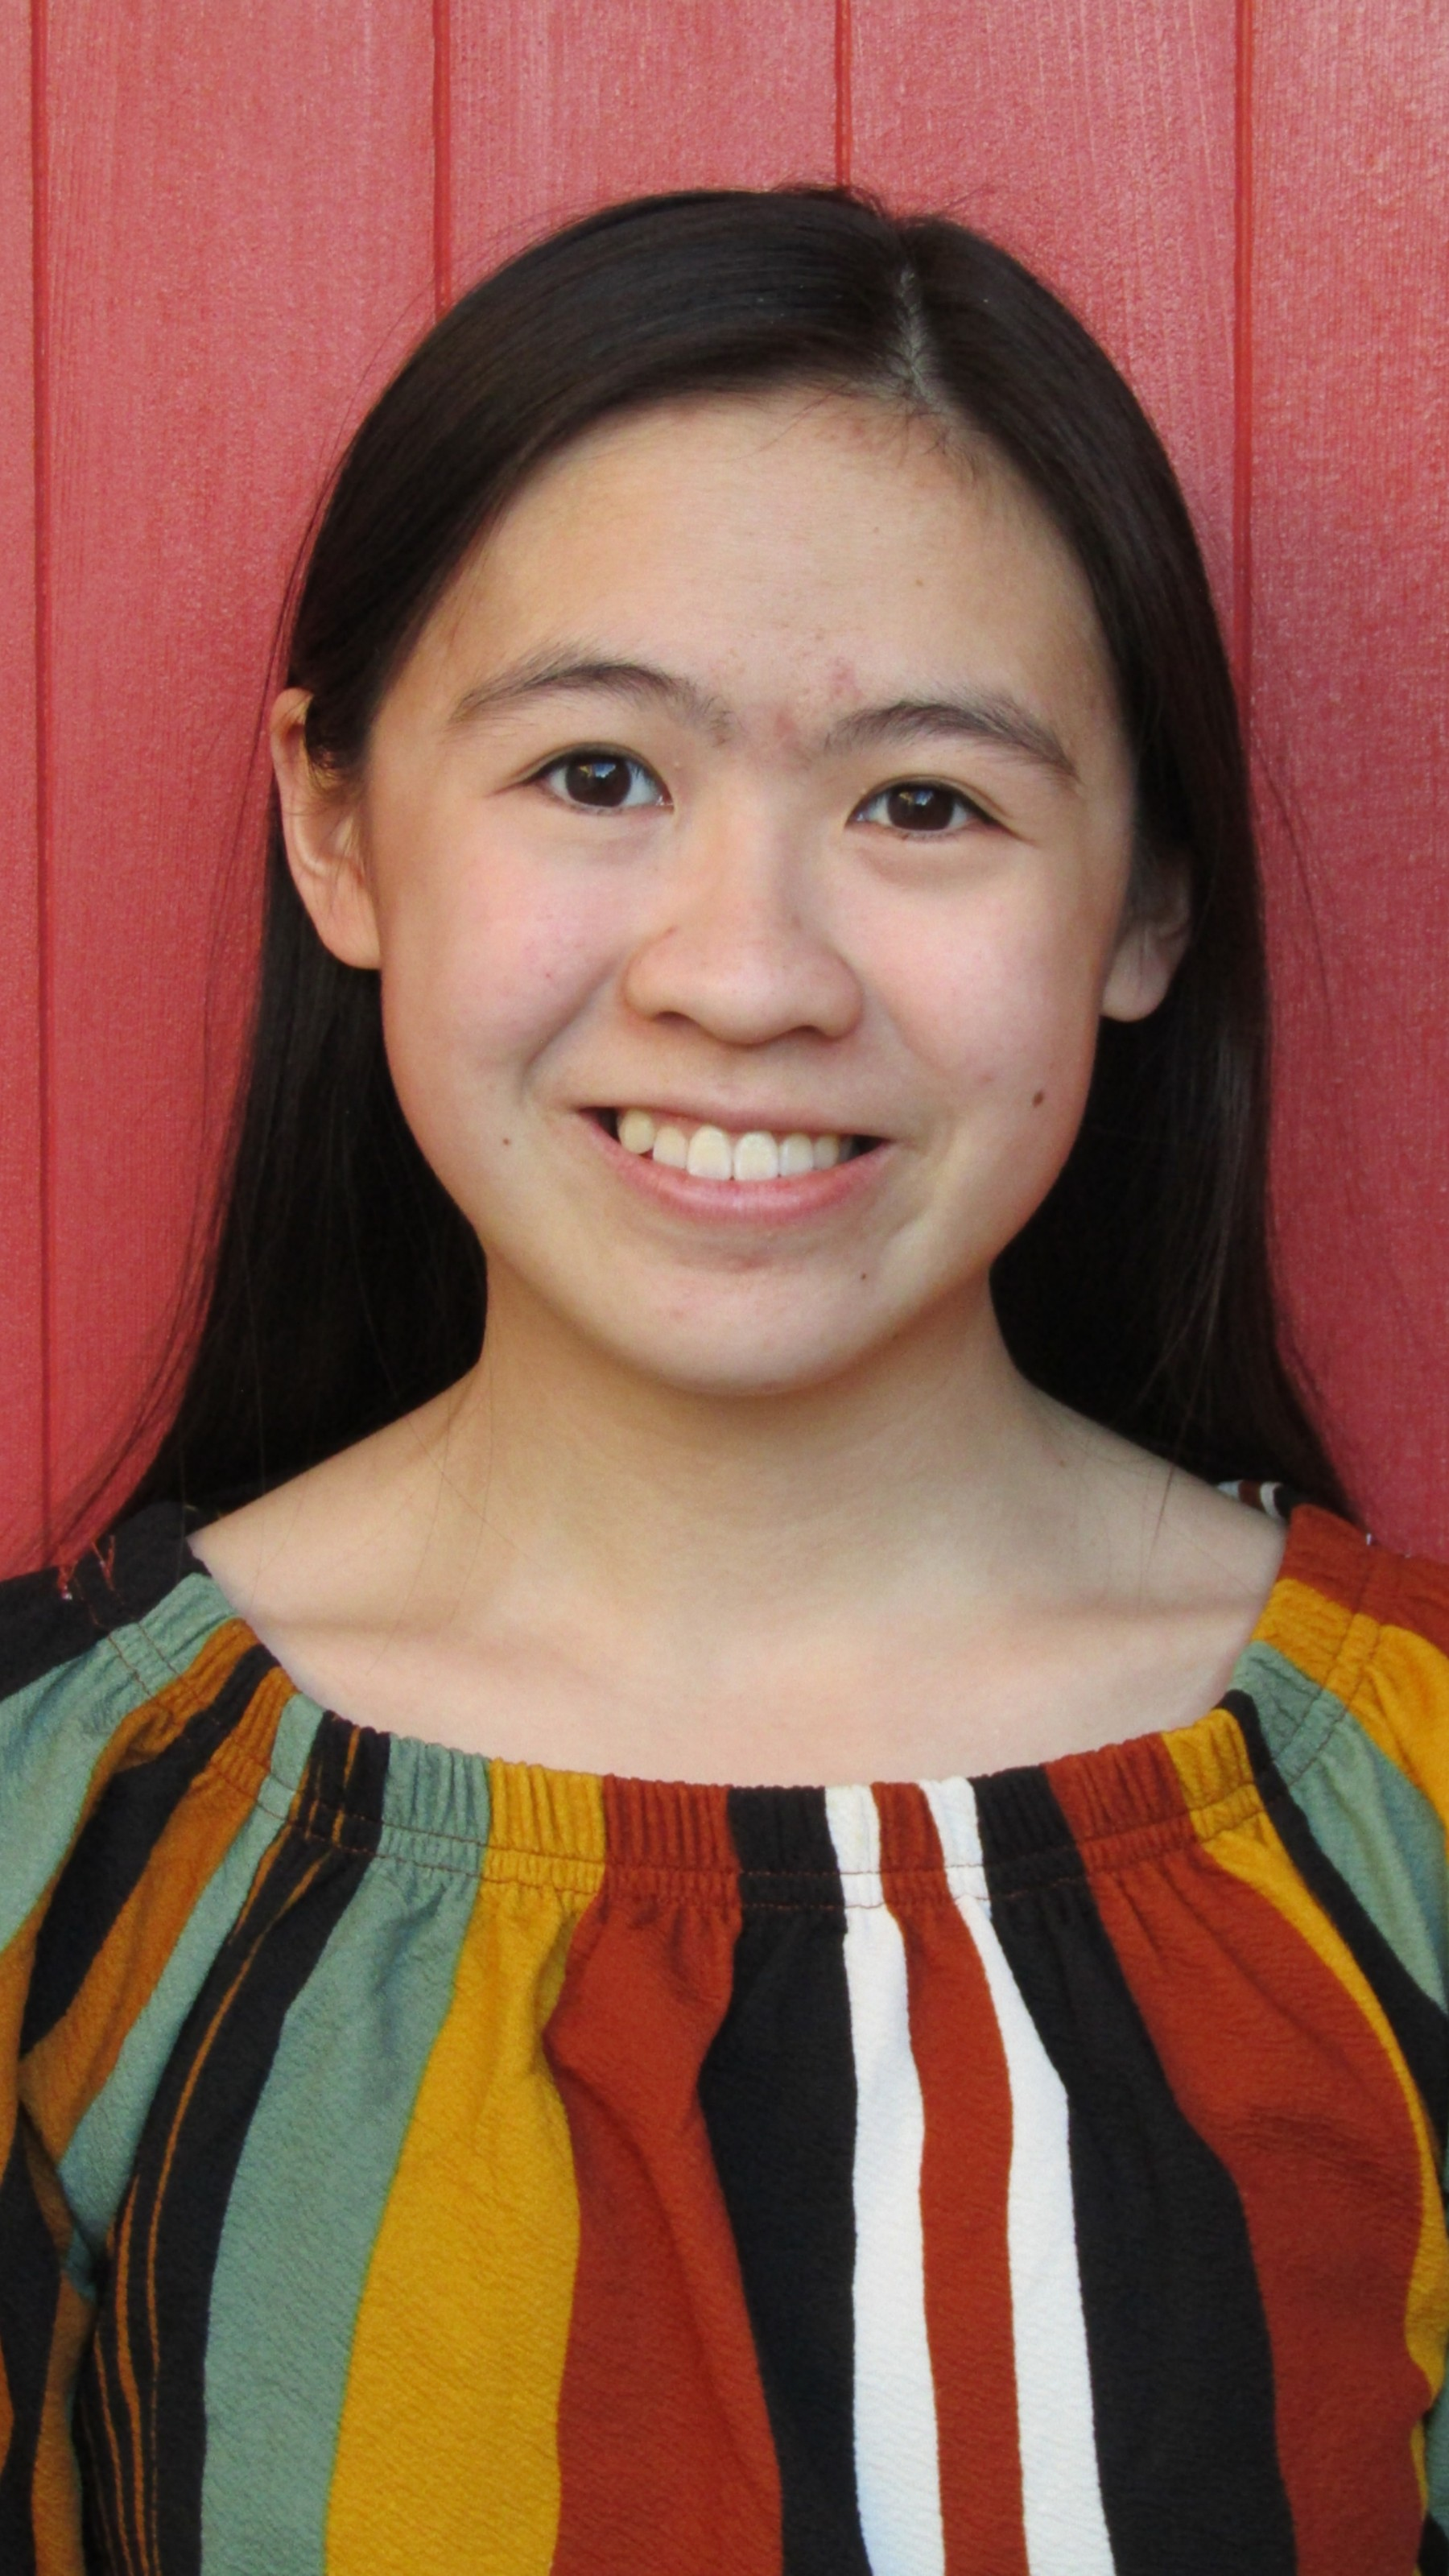 Image of E Wen Wong; 2020 National Schools Poetry Award winner